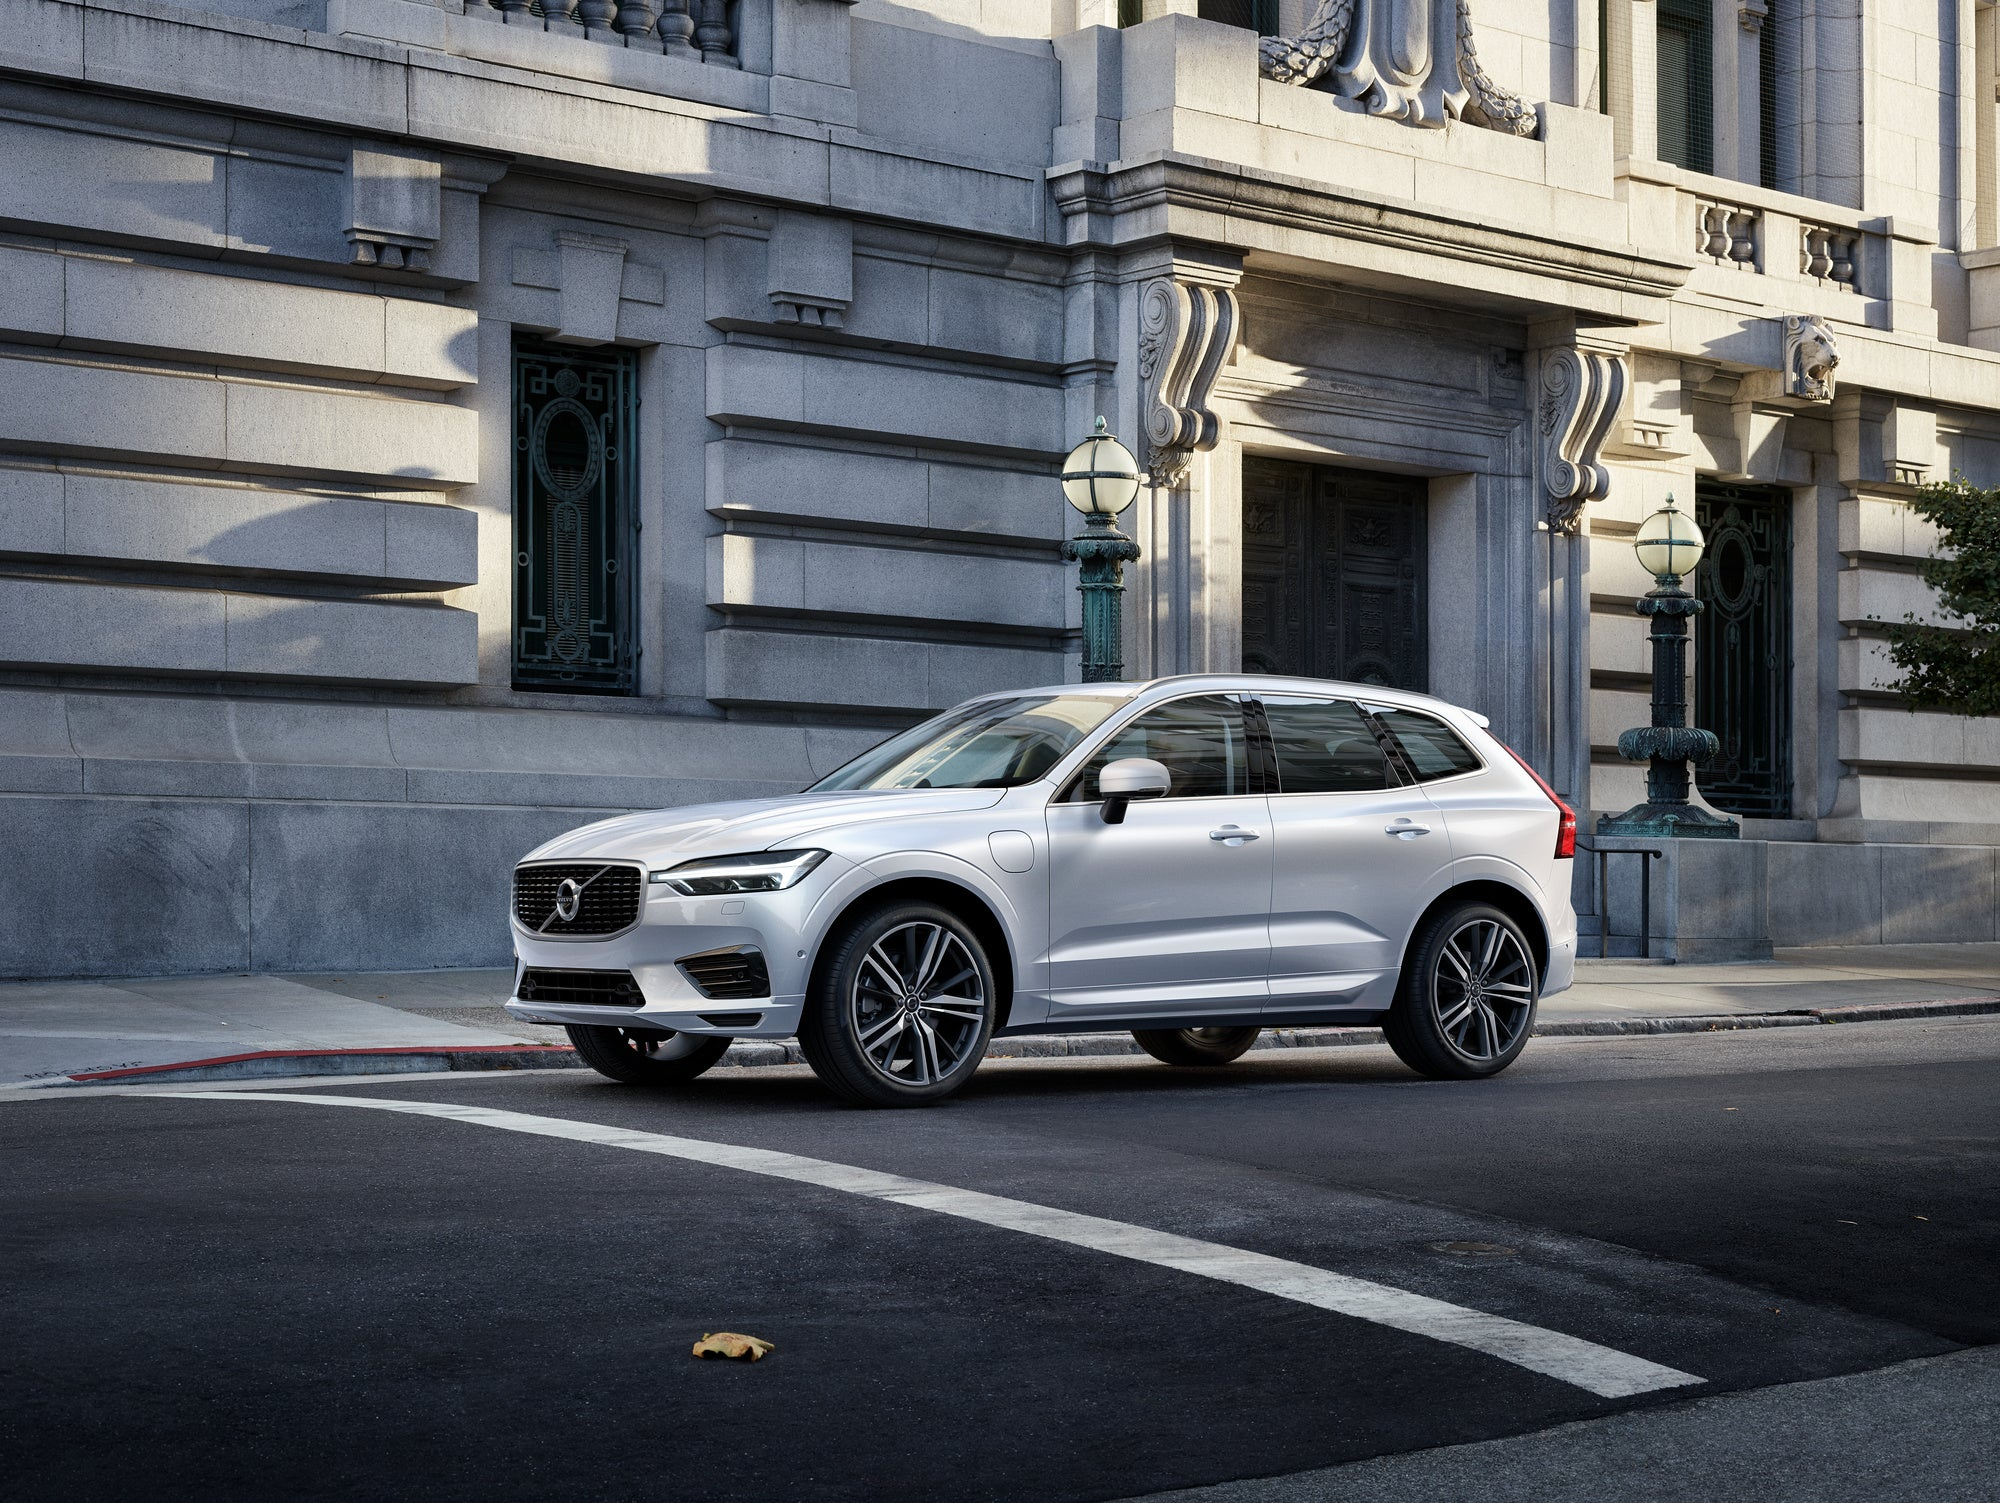 Volvo to display XC90 and XC60 models at The Sustainable City Horse Show